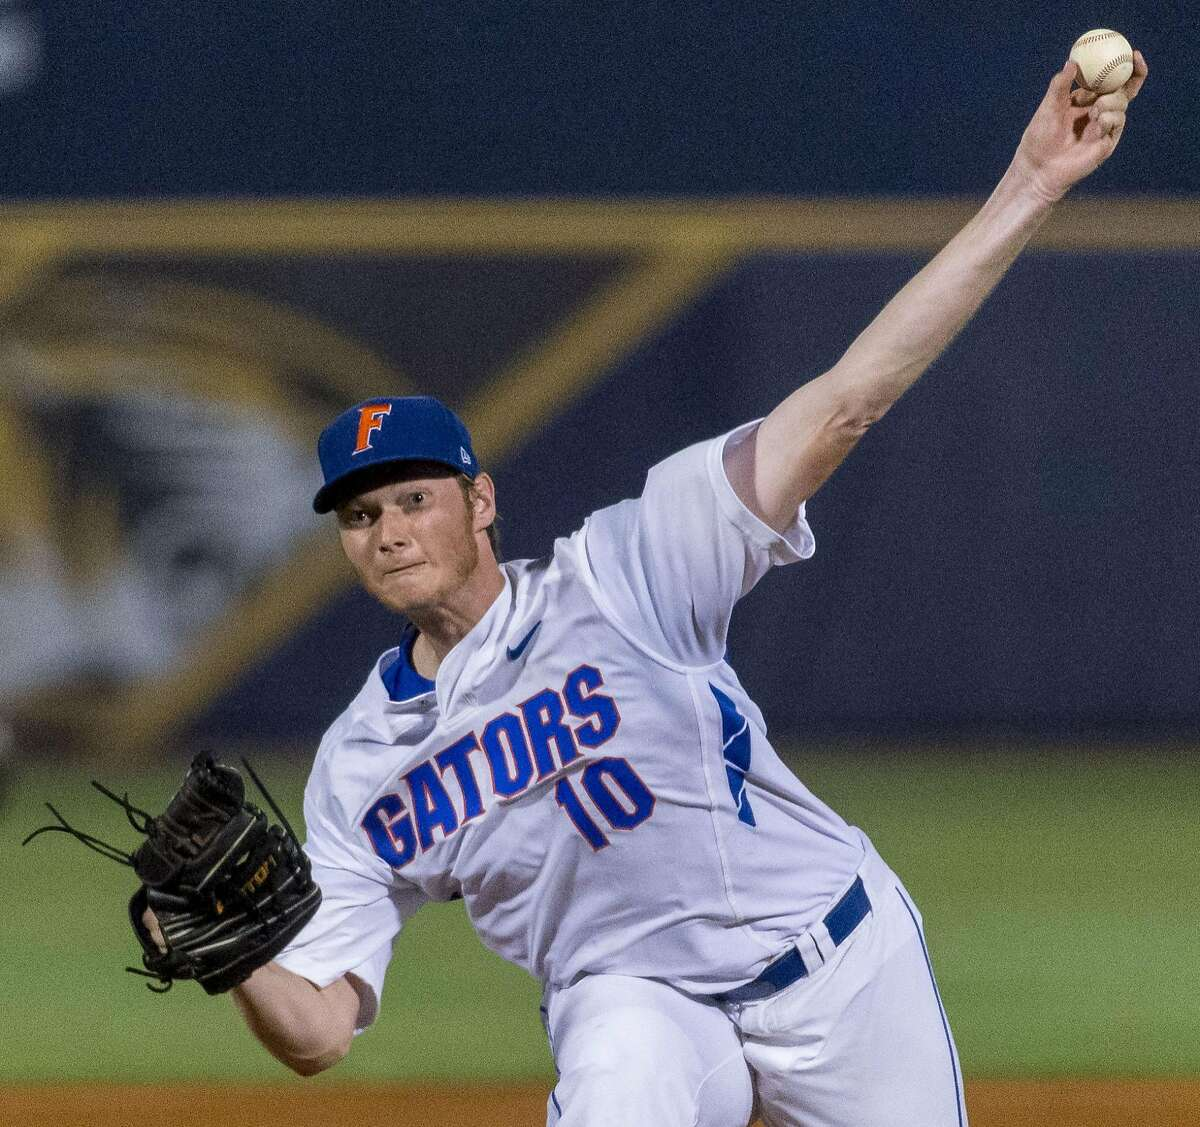 Florida's A.J. Puk pitches in the sixth inning against LSU during a Southeastern Conference baseball tournament game Wednesday, May 25, 2016, in Hoover, Ala. (Vasha Hunt/AL.com via AP)